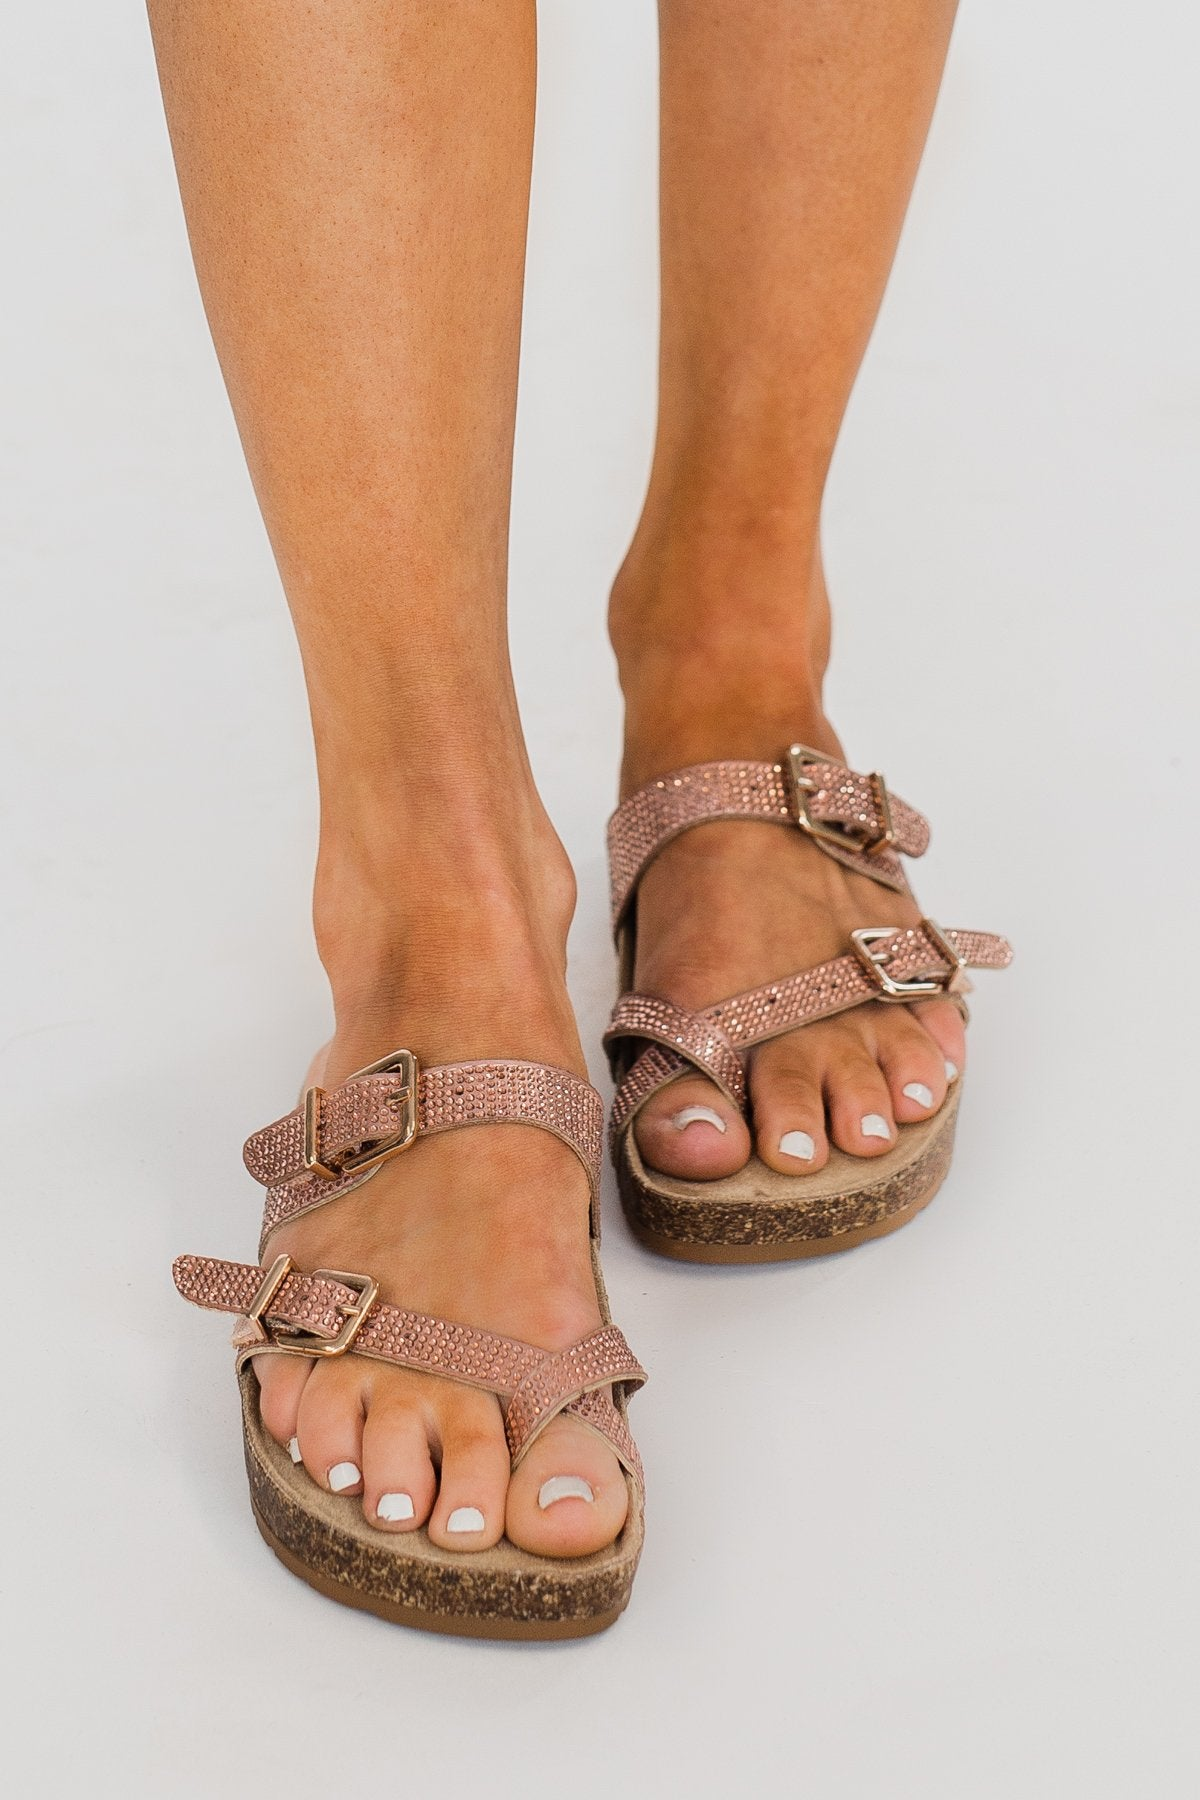 Sugar Xporter Sandals- Blush Rose Gold